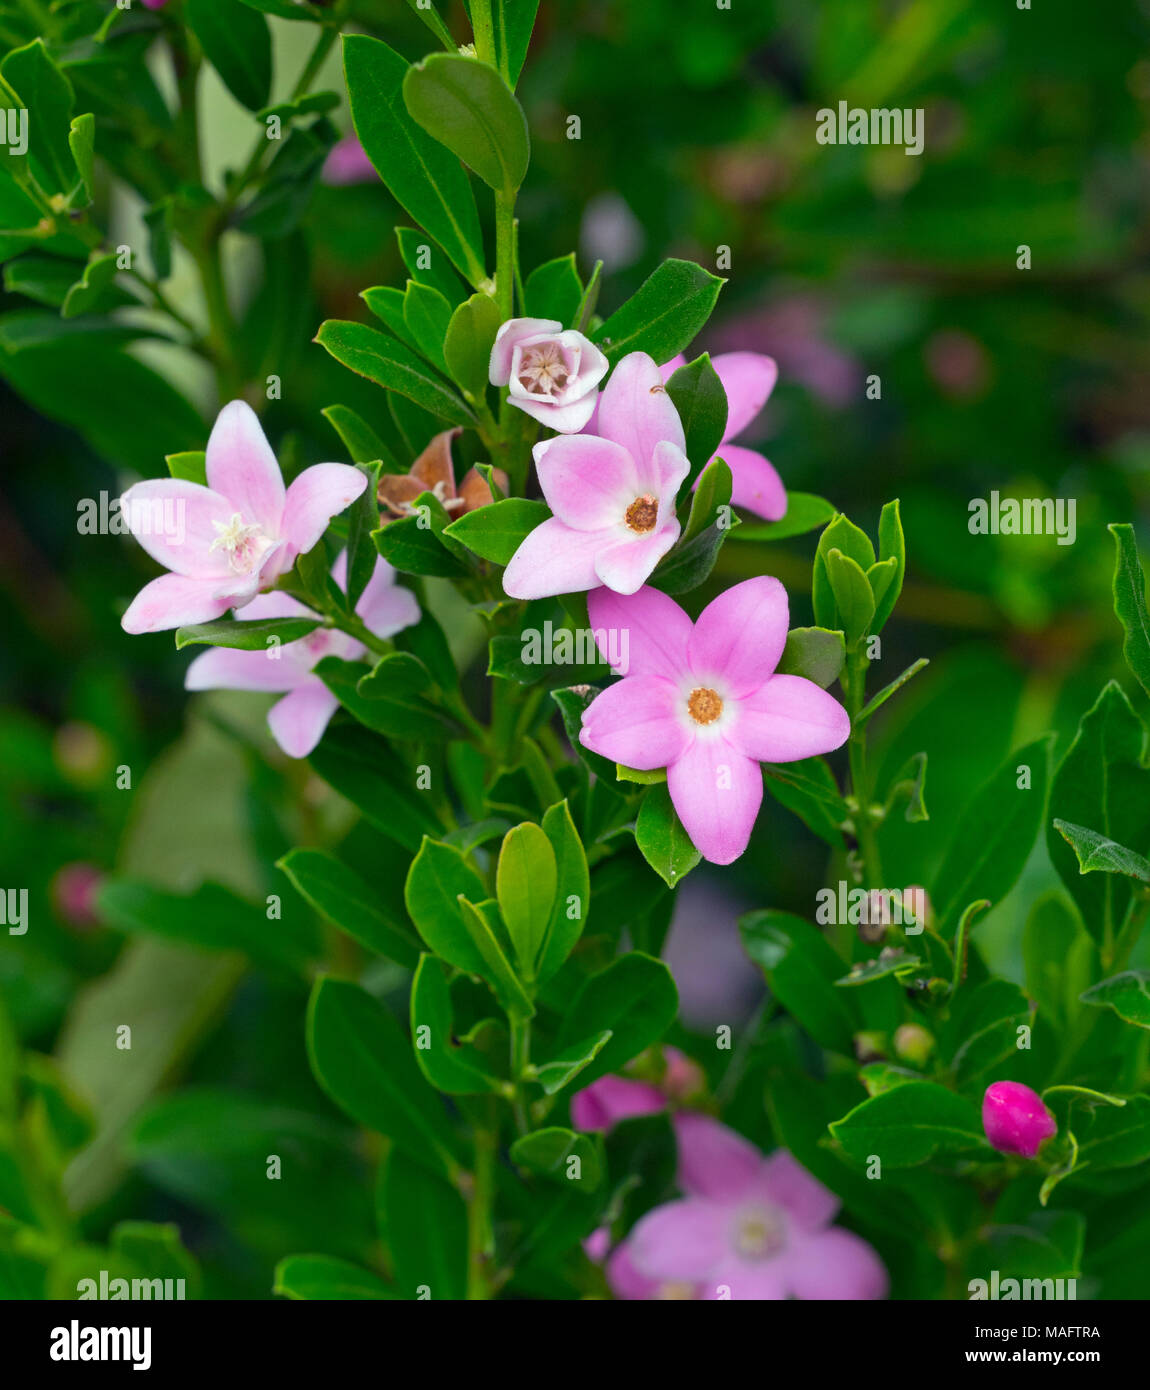 Crowea hybrid 'Poorinda Ecstasy' is a genus of small evergreen shrubs in the plant family Rutaceae sometimes known as Waxflowers - Stock Image